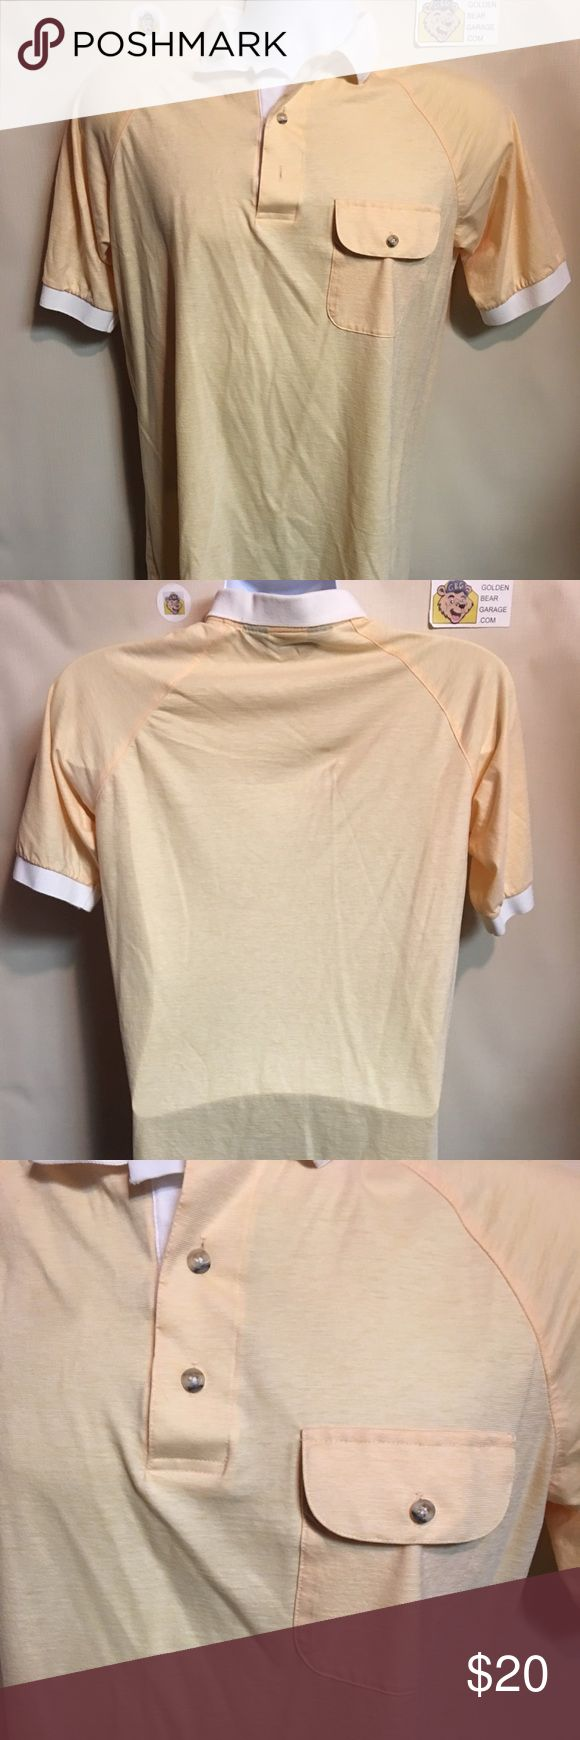 Vintage Hathaway Yellow Golf Polo Dress Shirt Vintage Men's Medium Hathaway by Jack Nicklaus Yellow Button Up Polo Dress Shirt. In excellent condition with no major flaws hathaway Shirts Polos